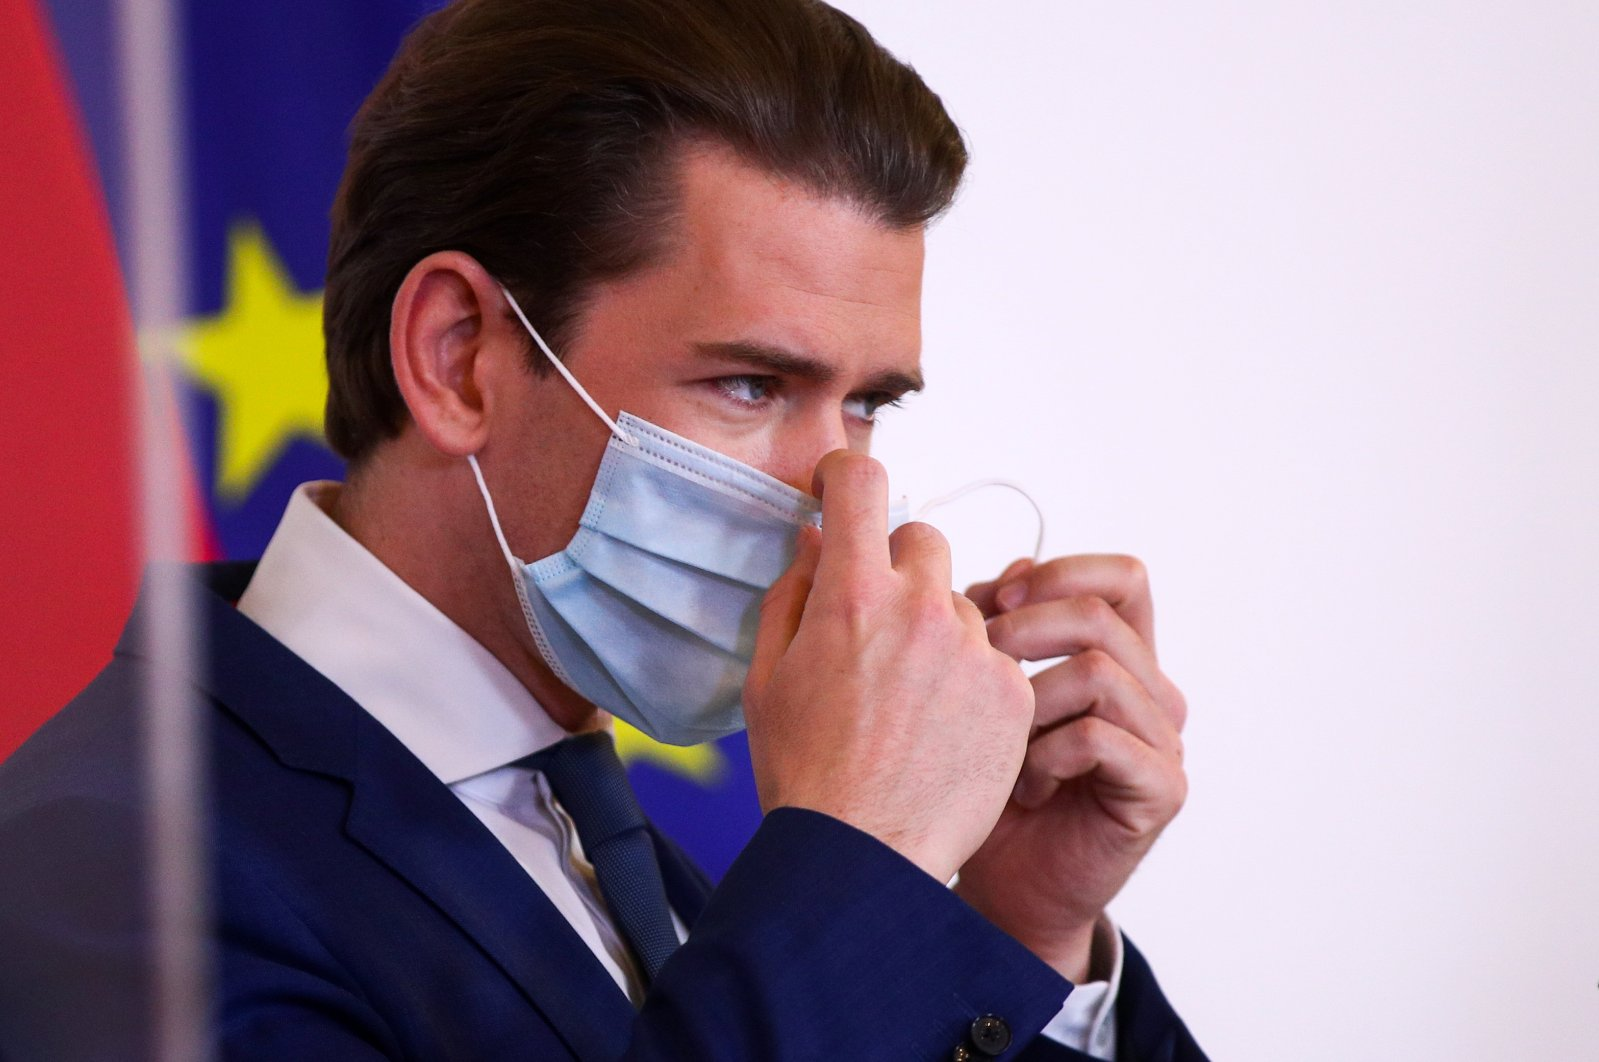 Austrian Chancellor Sebastian Kurz removes his face mask as he attends a news conference during the coronavirus outbreak in Vienna, Austria, May 29, 2020. (Reuters Photo)